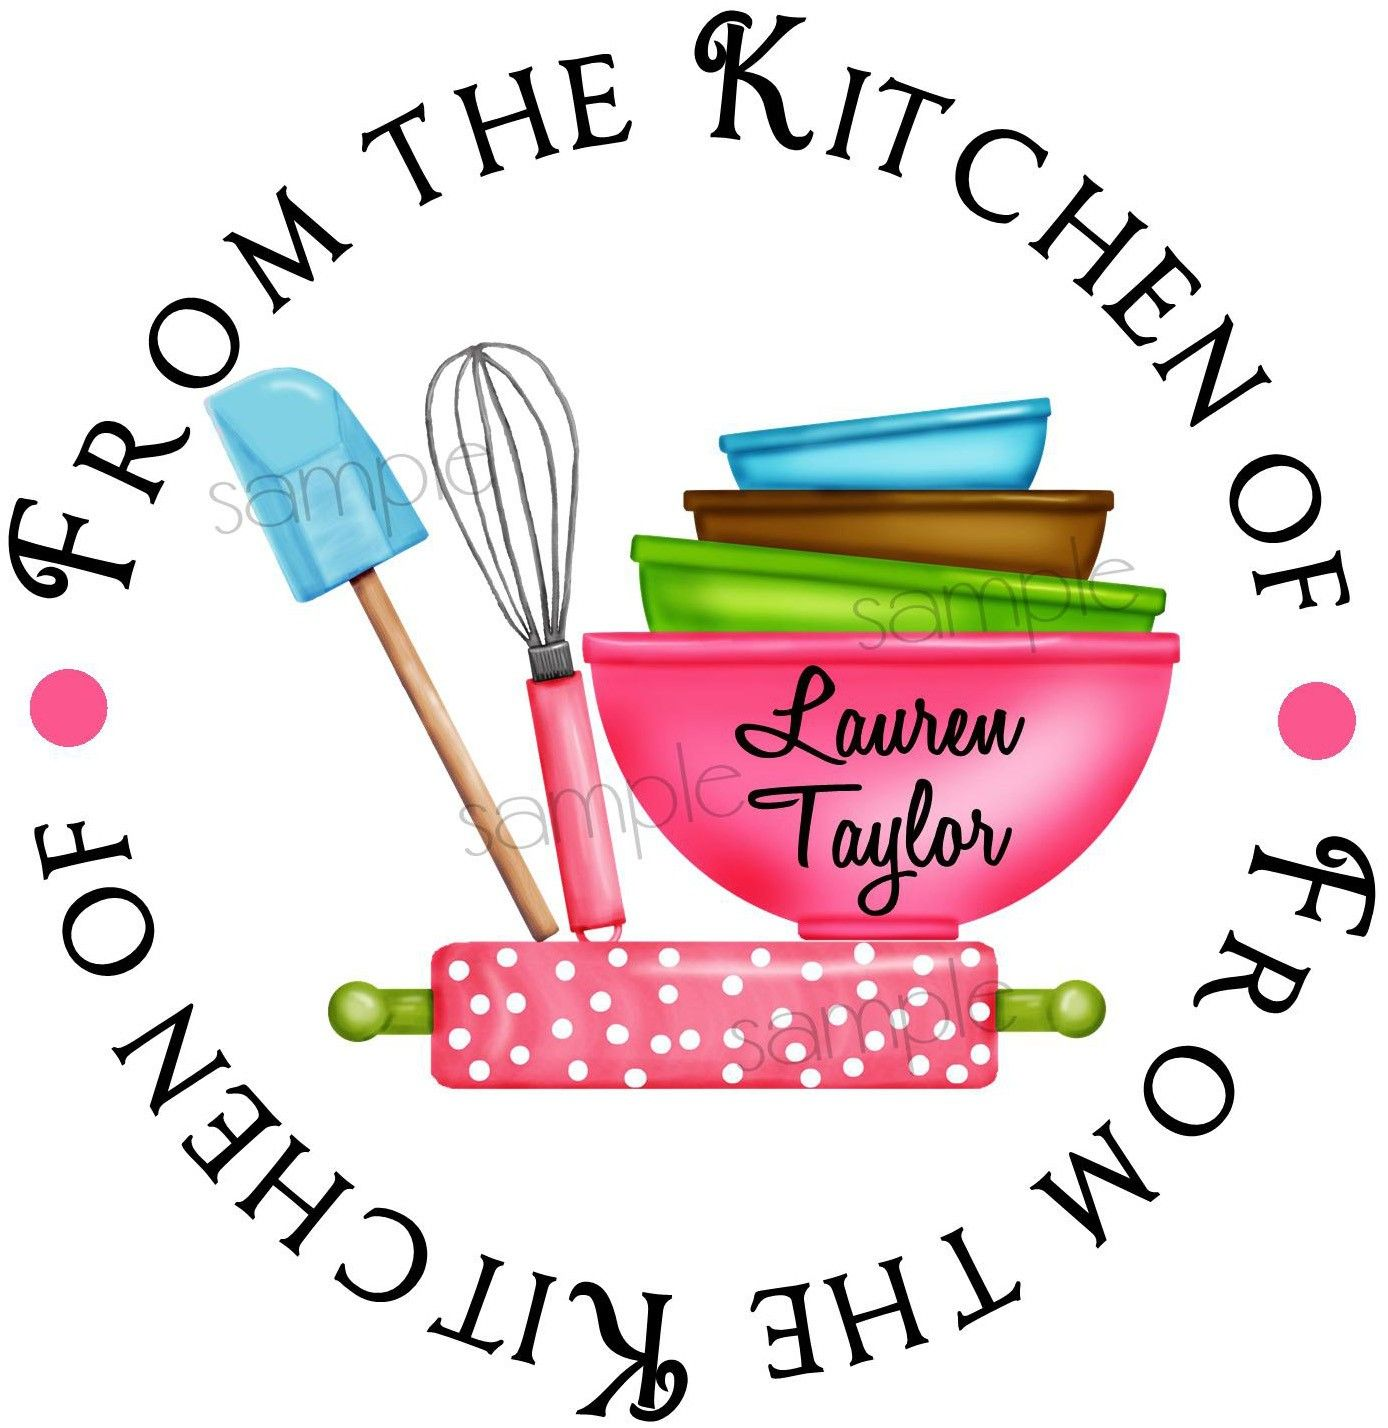 kitchen stickers baking labels kitchen supplies rolling pin rh pinterest com from the kitchen of labels free download from the kitchen of labels personalized